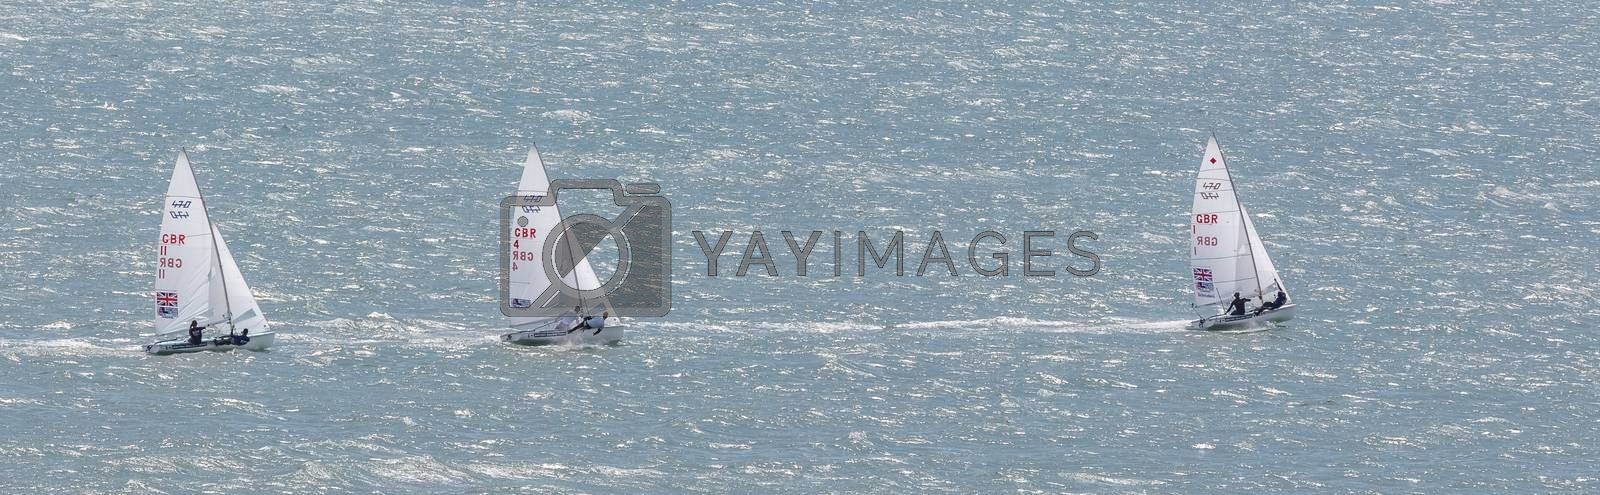 Portland harbour, United Kingdom - July 3, 2020: High Angle aerial panoramic shot of three laser class racing dinghies with one of them sailing way ahead of the first two